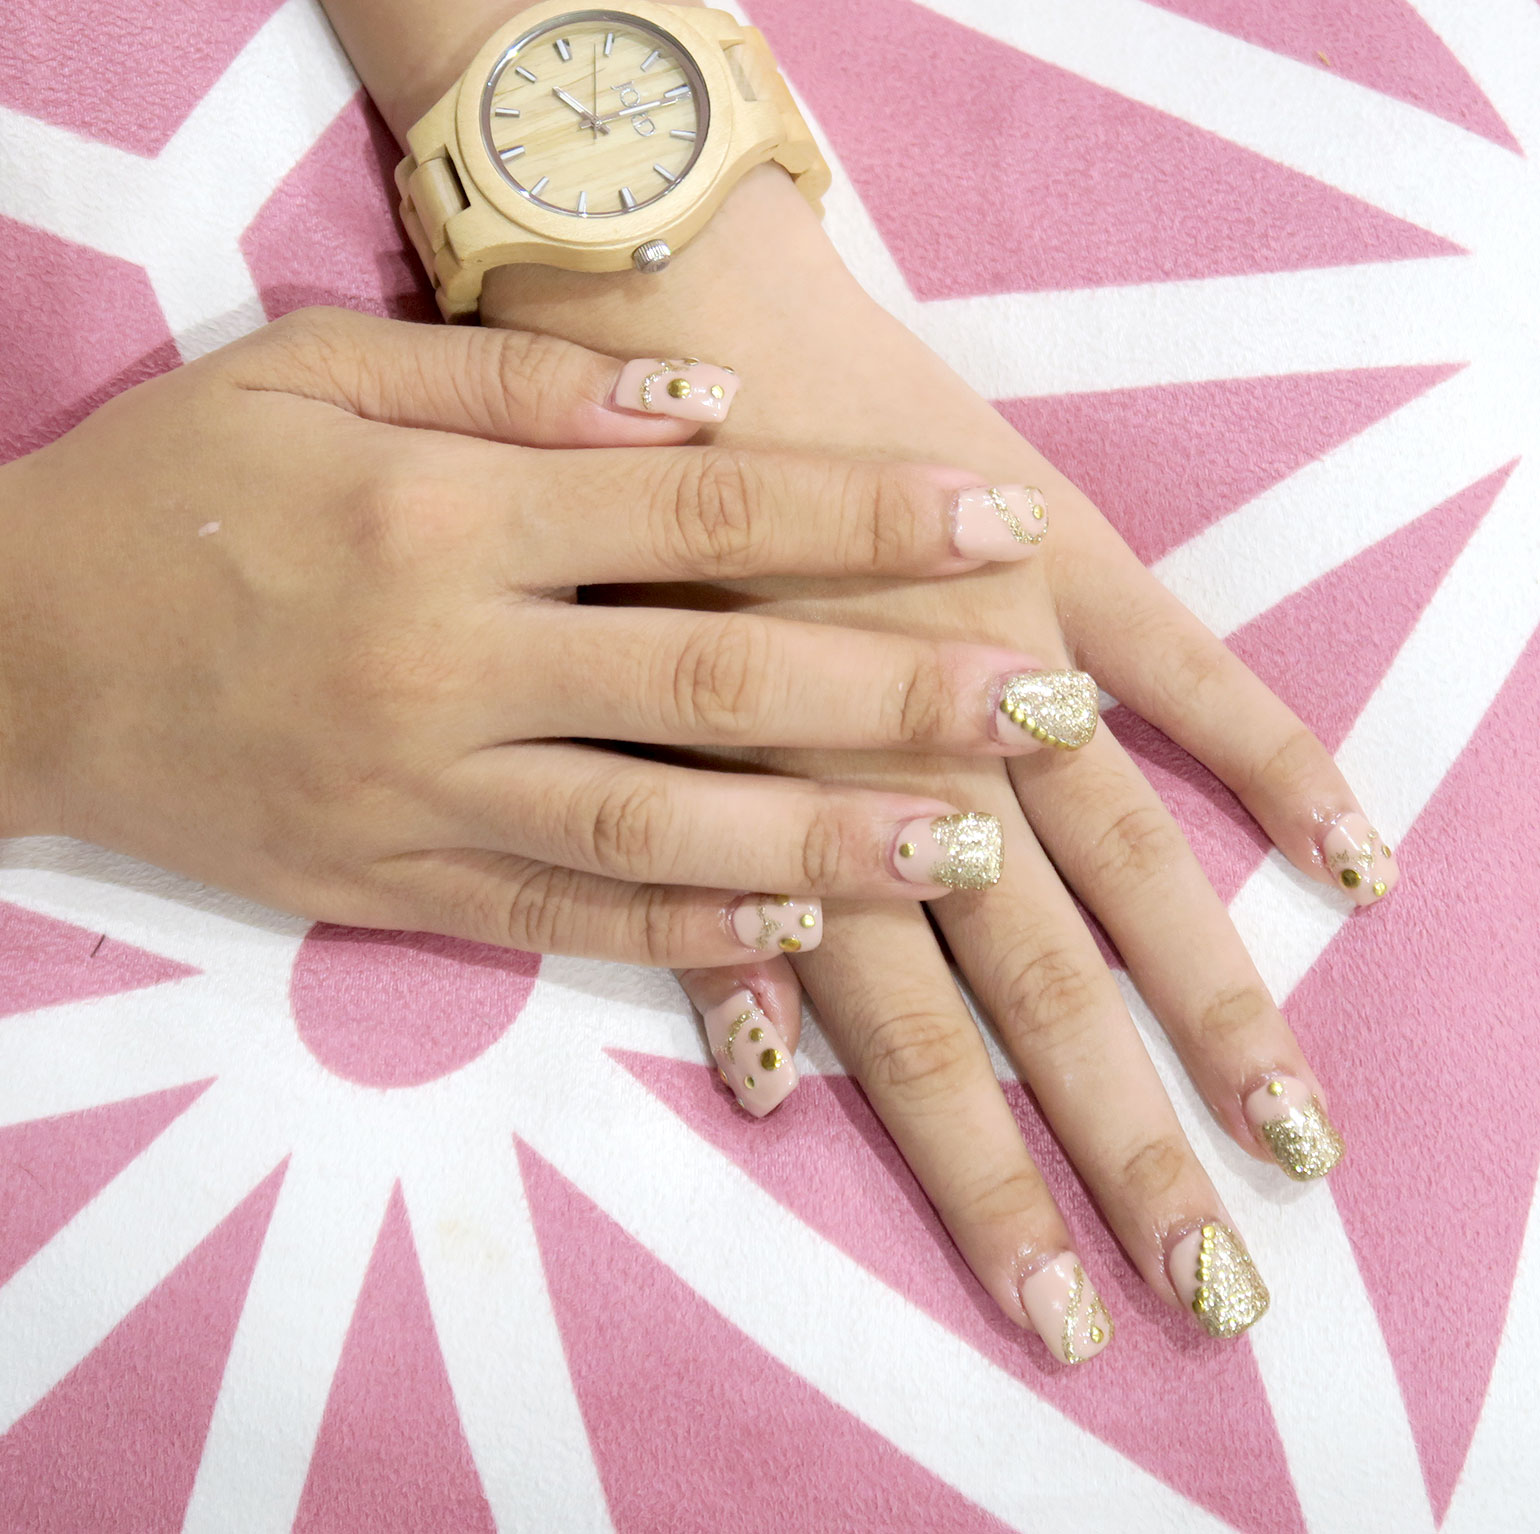 11 Acrylic Nails Review - Nail Art - Ayumi Las Piñas - Gen-zel.com(c)